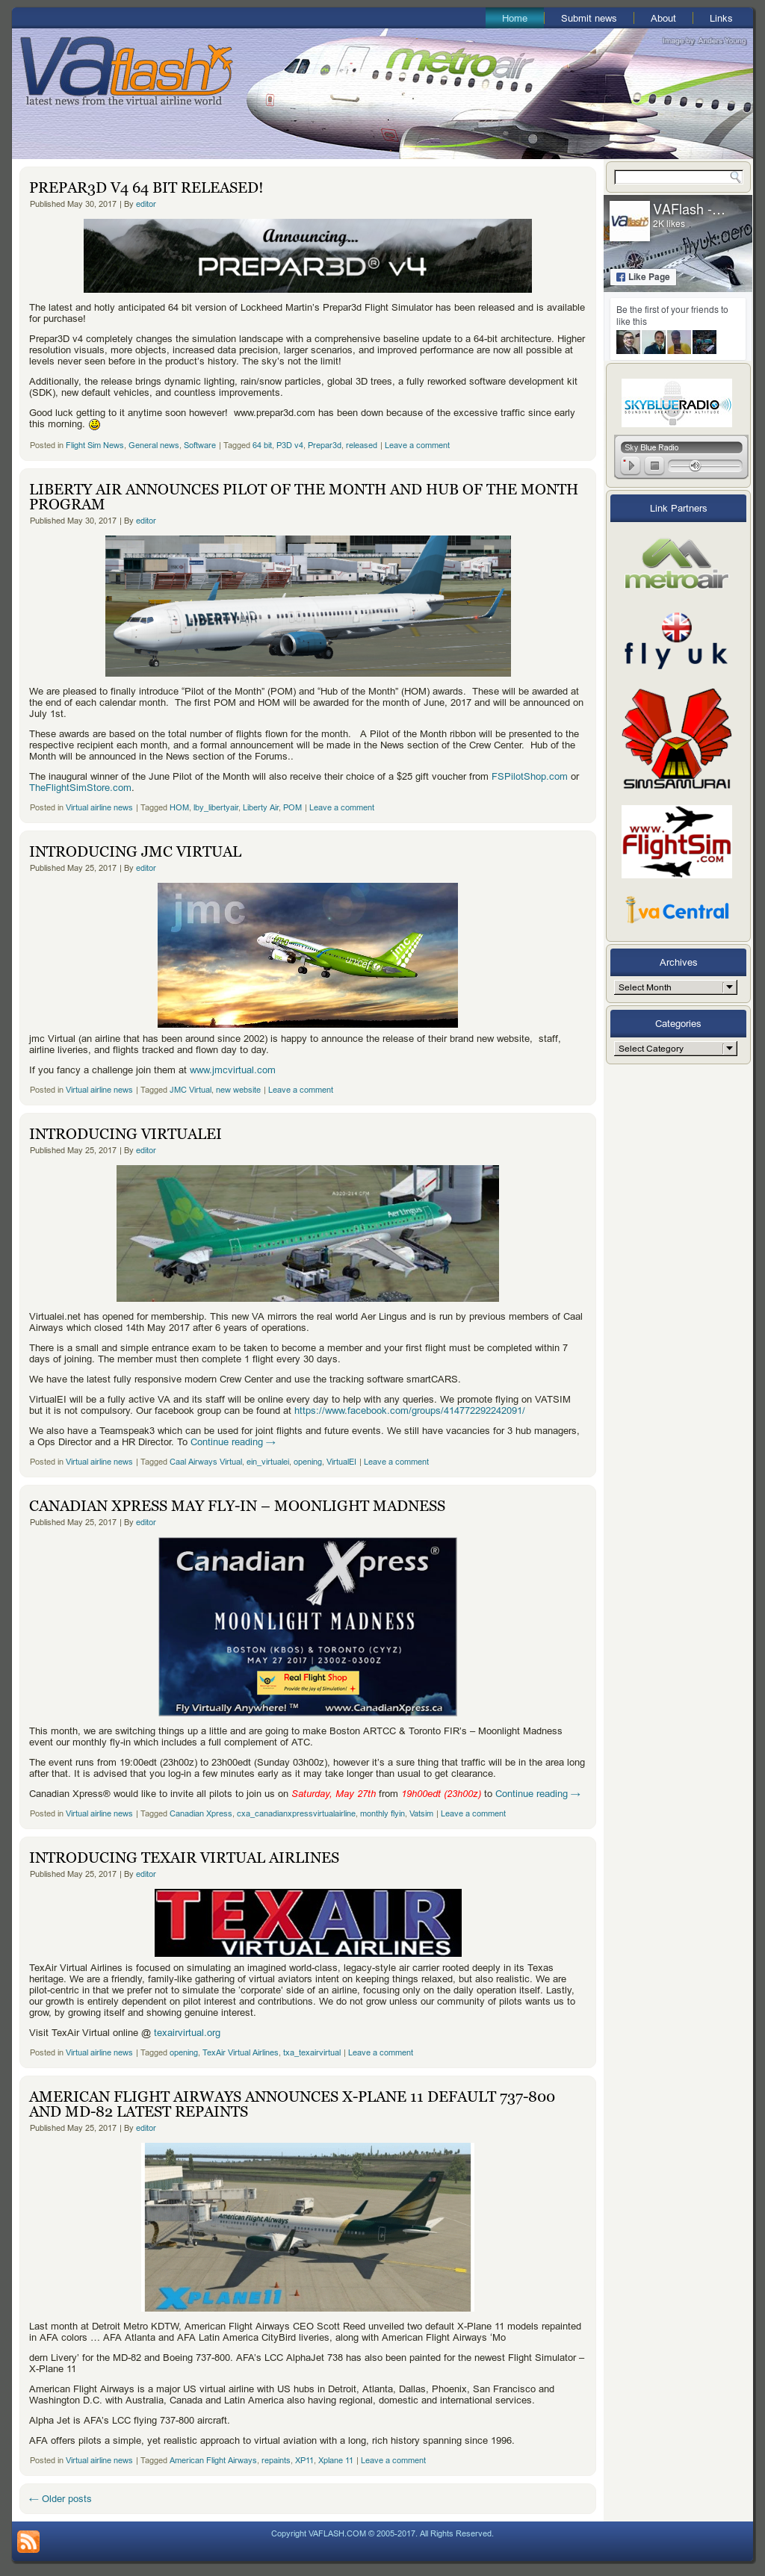 Vaflash - Virtual Airline News Competitors, Revenue and Employees